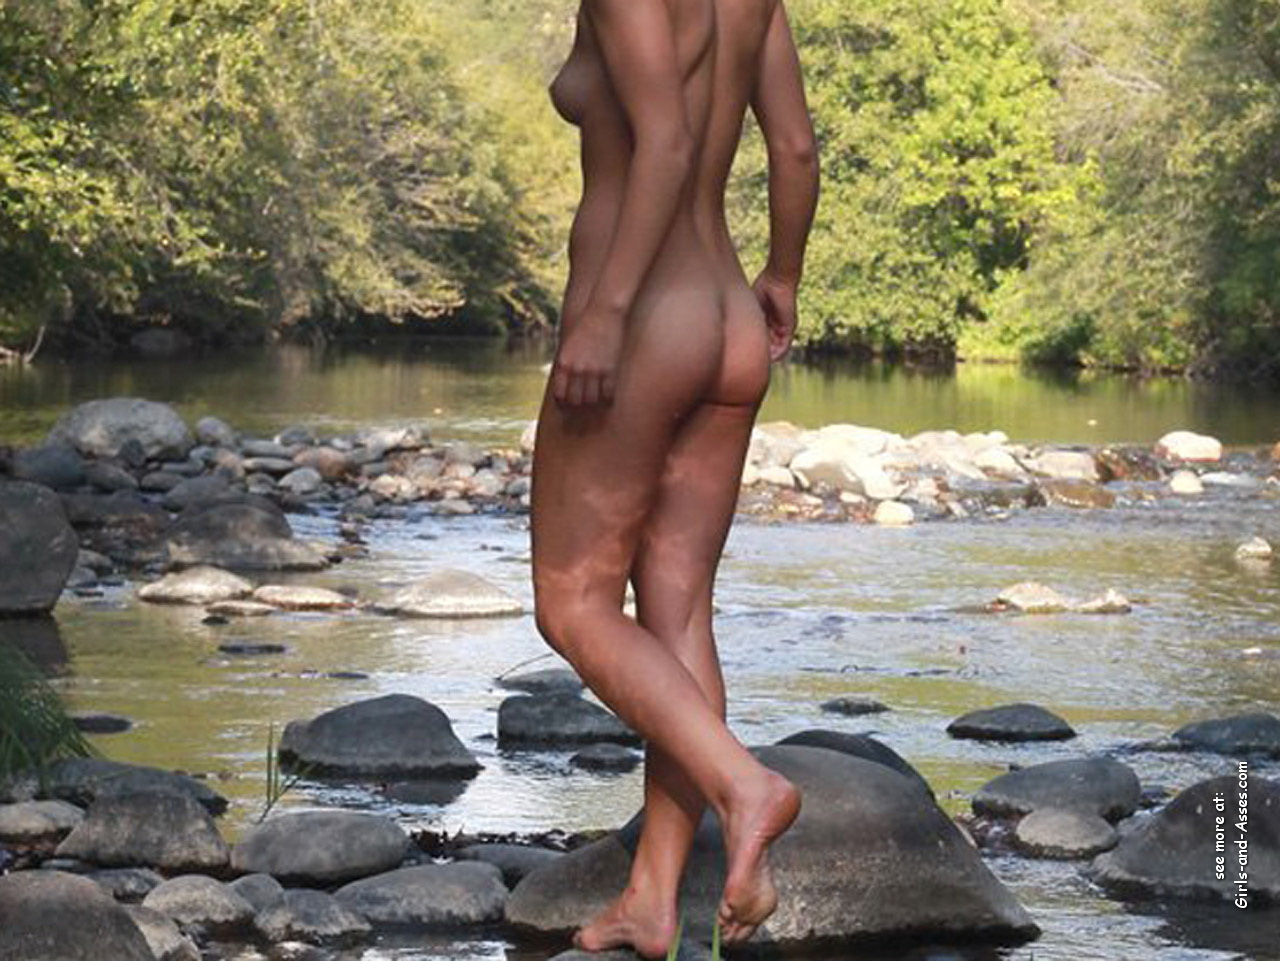 naked girl with cute butt on the river photo 08652